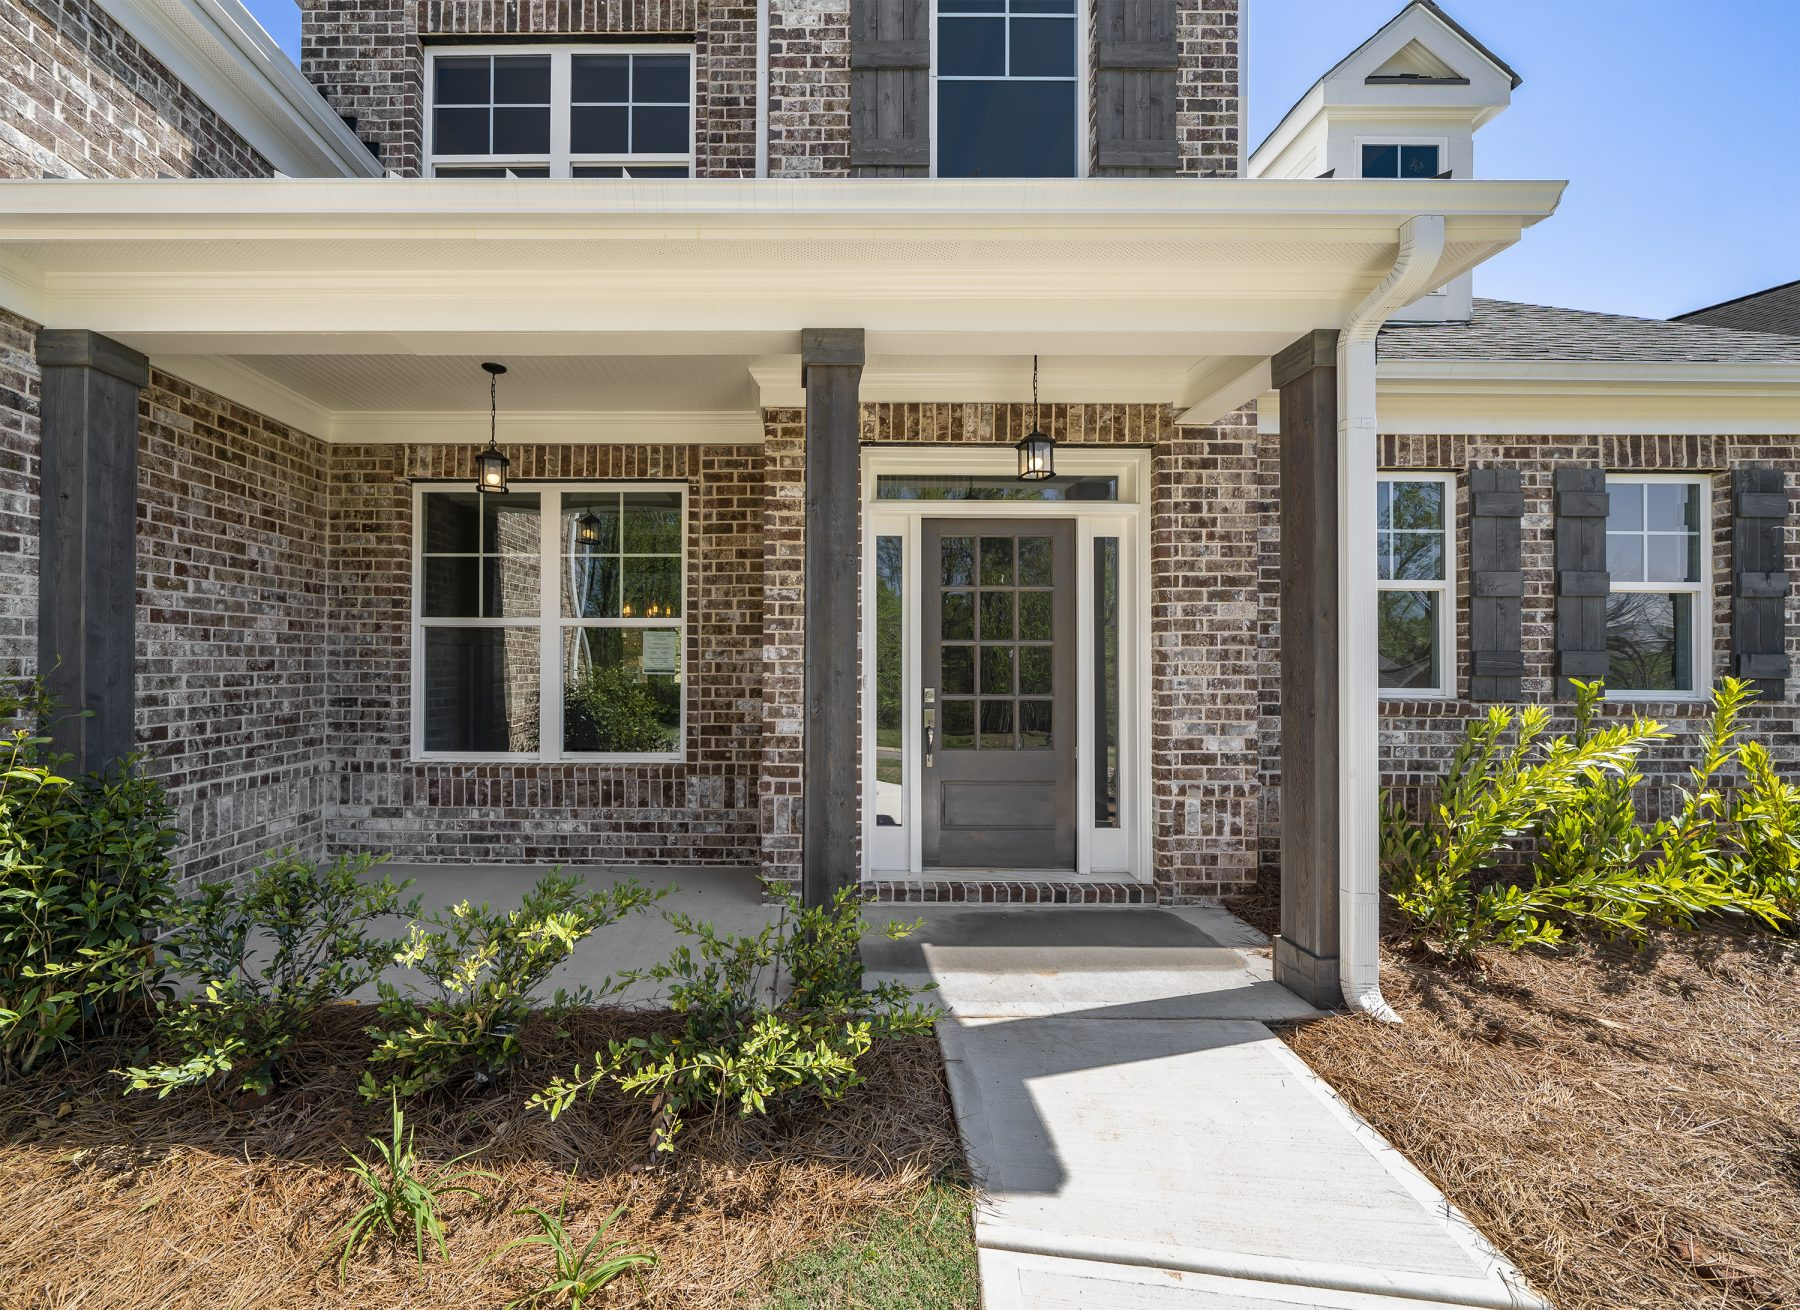 Traditions of Braselton has beautiful custom homes